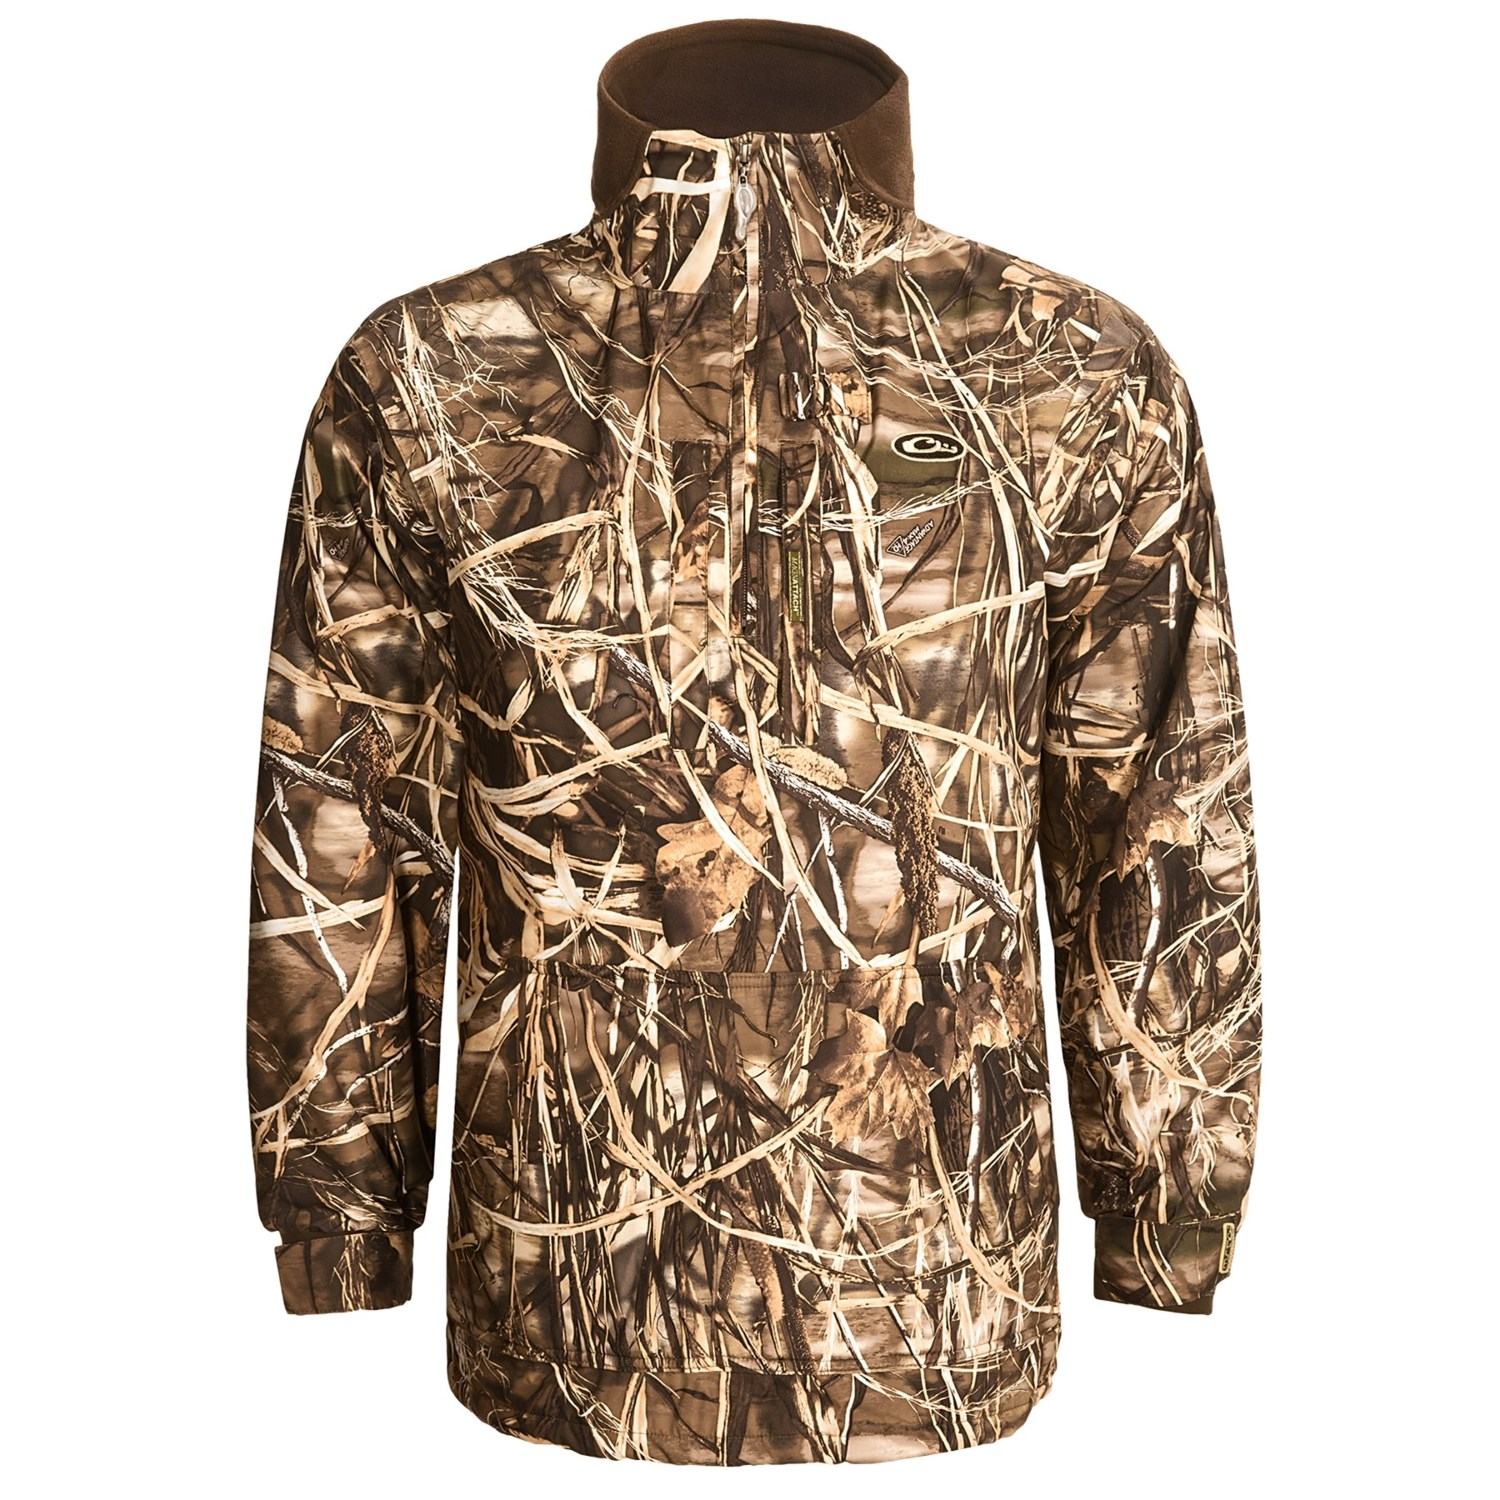 Realtree Girl Brand Women's Mia Camo Sweatshirt Xtra at Amazon